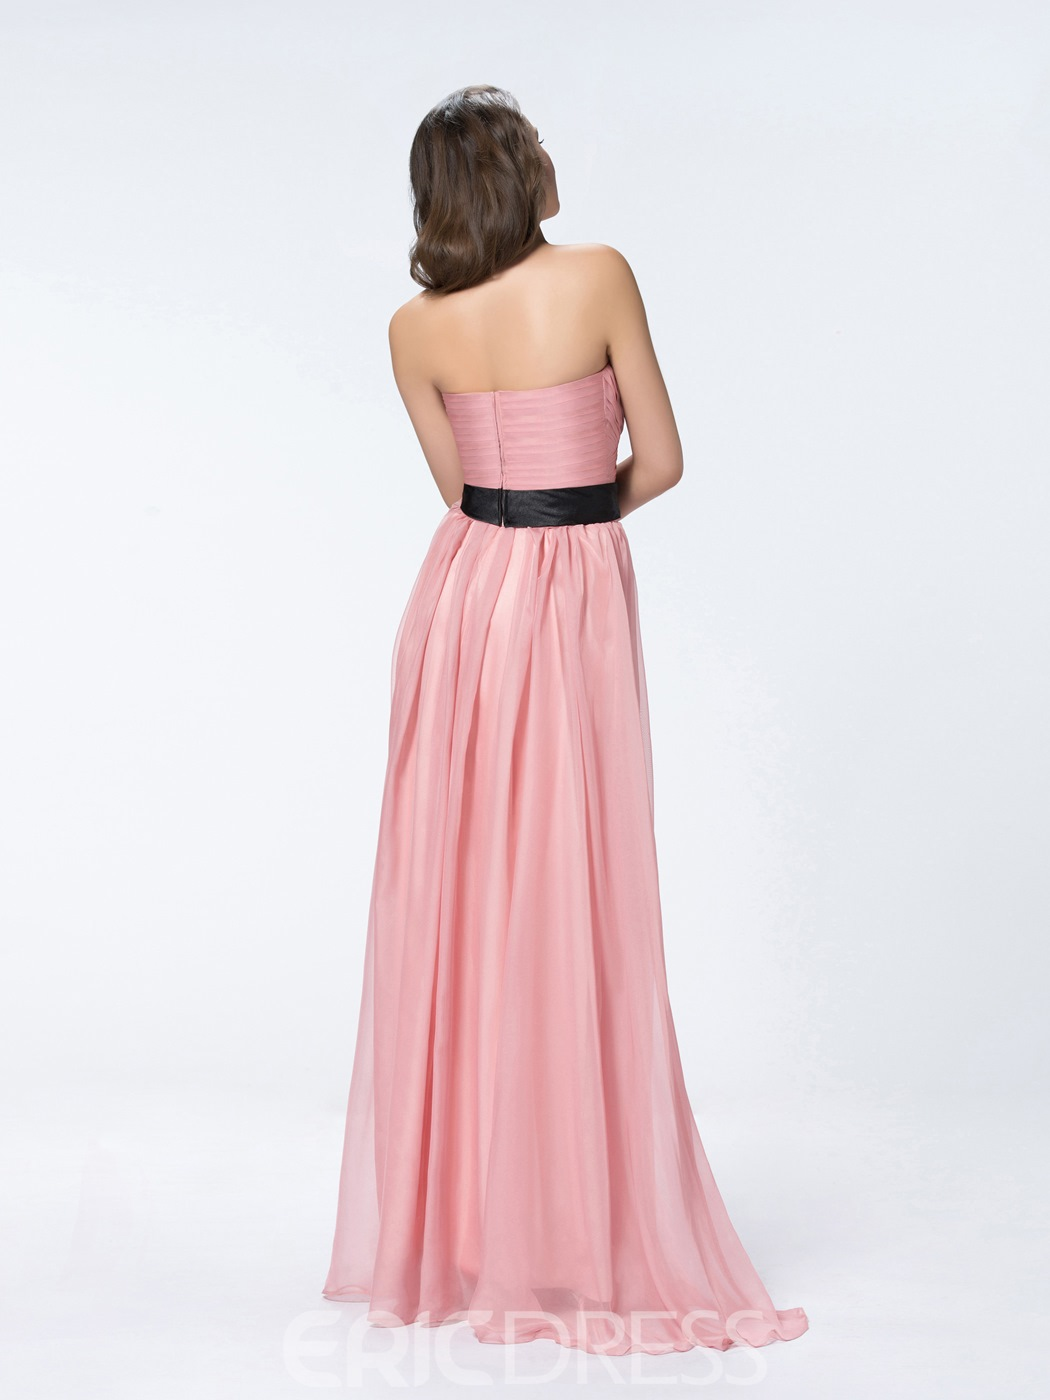 Strapless Flower A-Line Floor Length Bridesmaid Dress